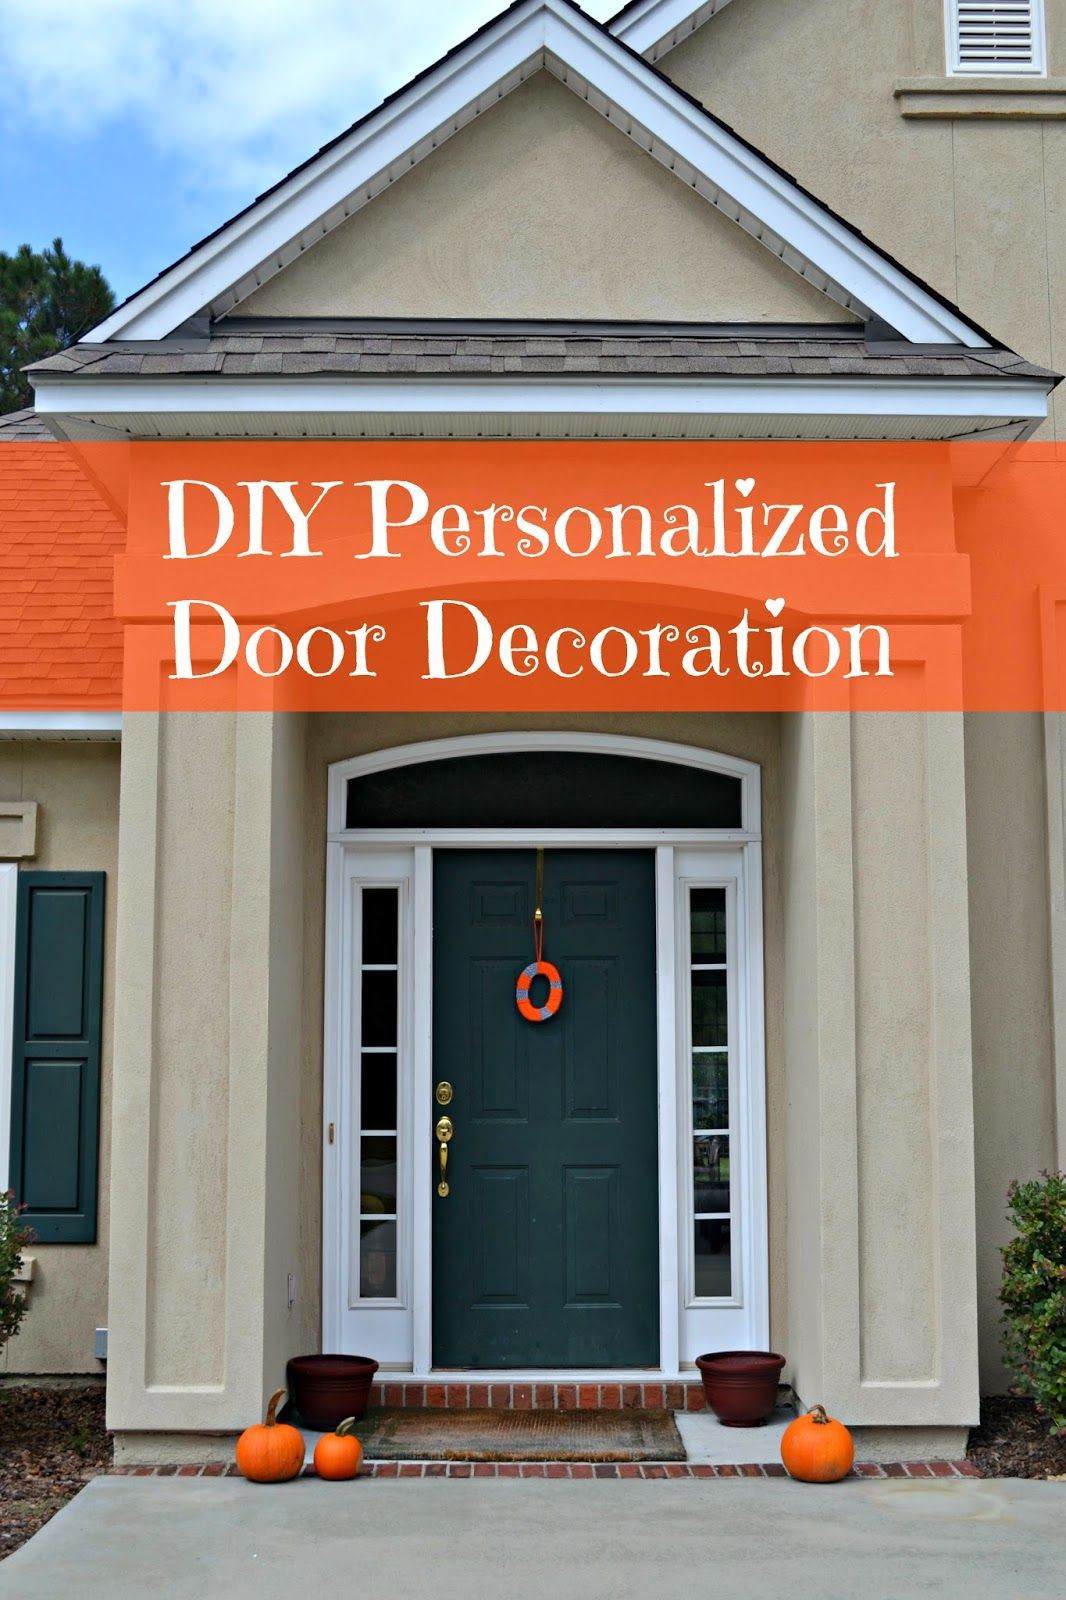 More Than Paper Blog: Personalized Door Decoration